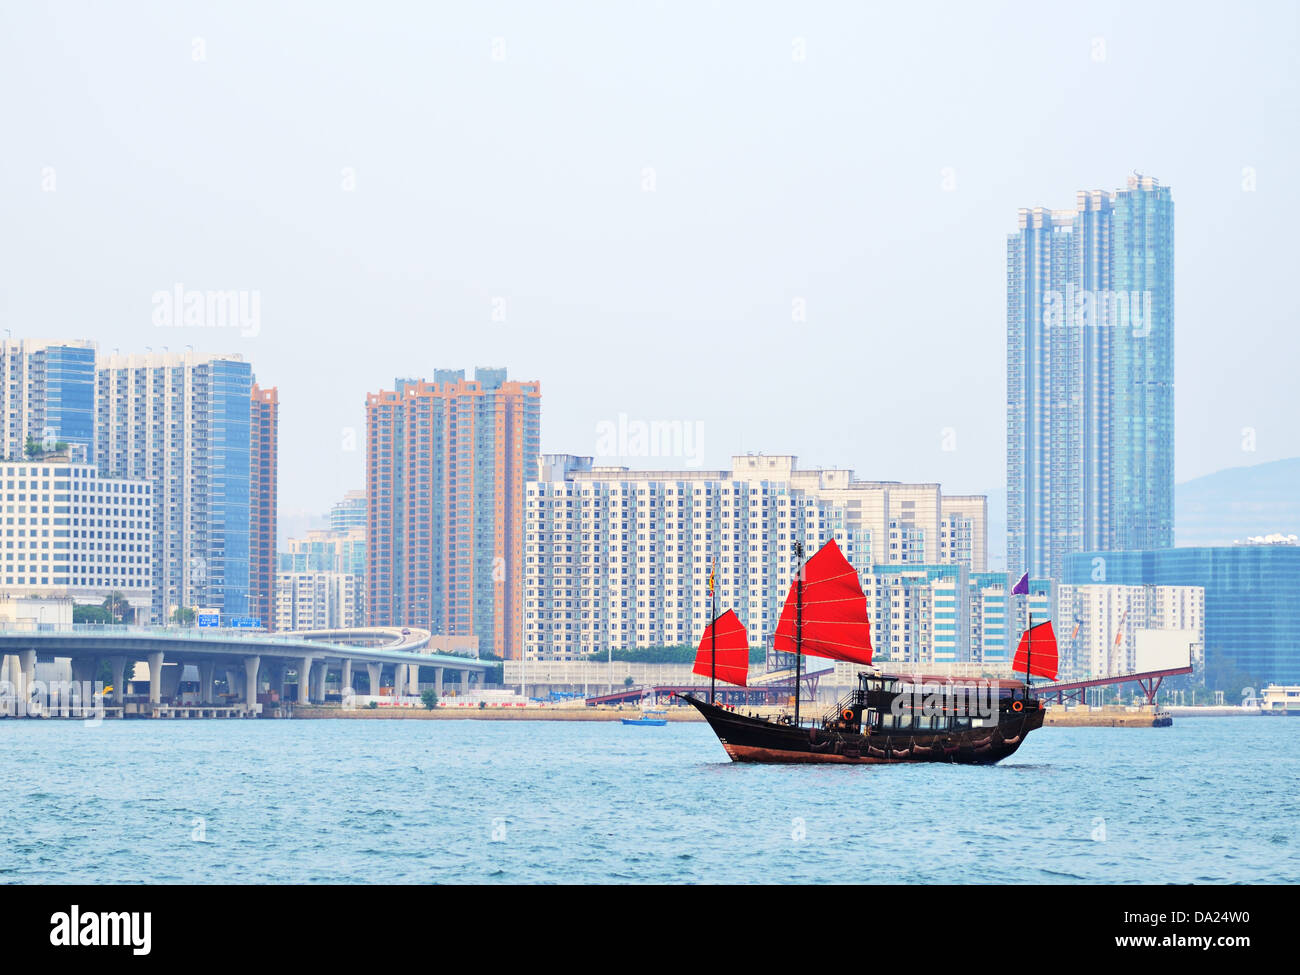 Chinese junk shp in Victoria Harbor, Hong Kong, China. Stock Photo